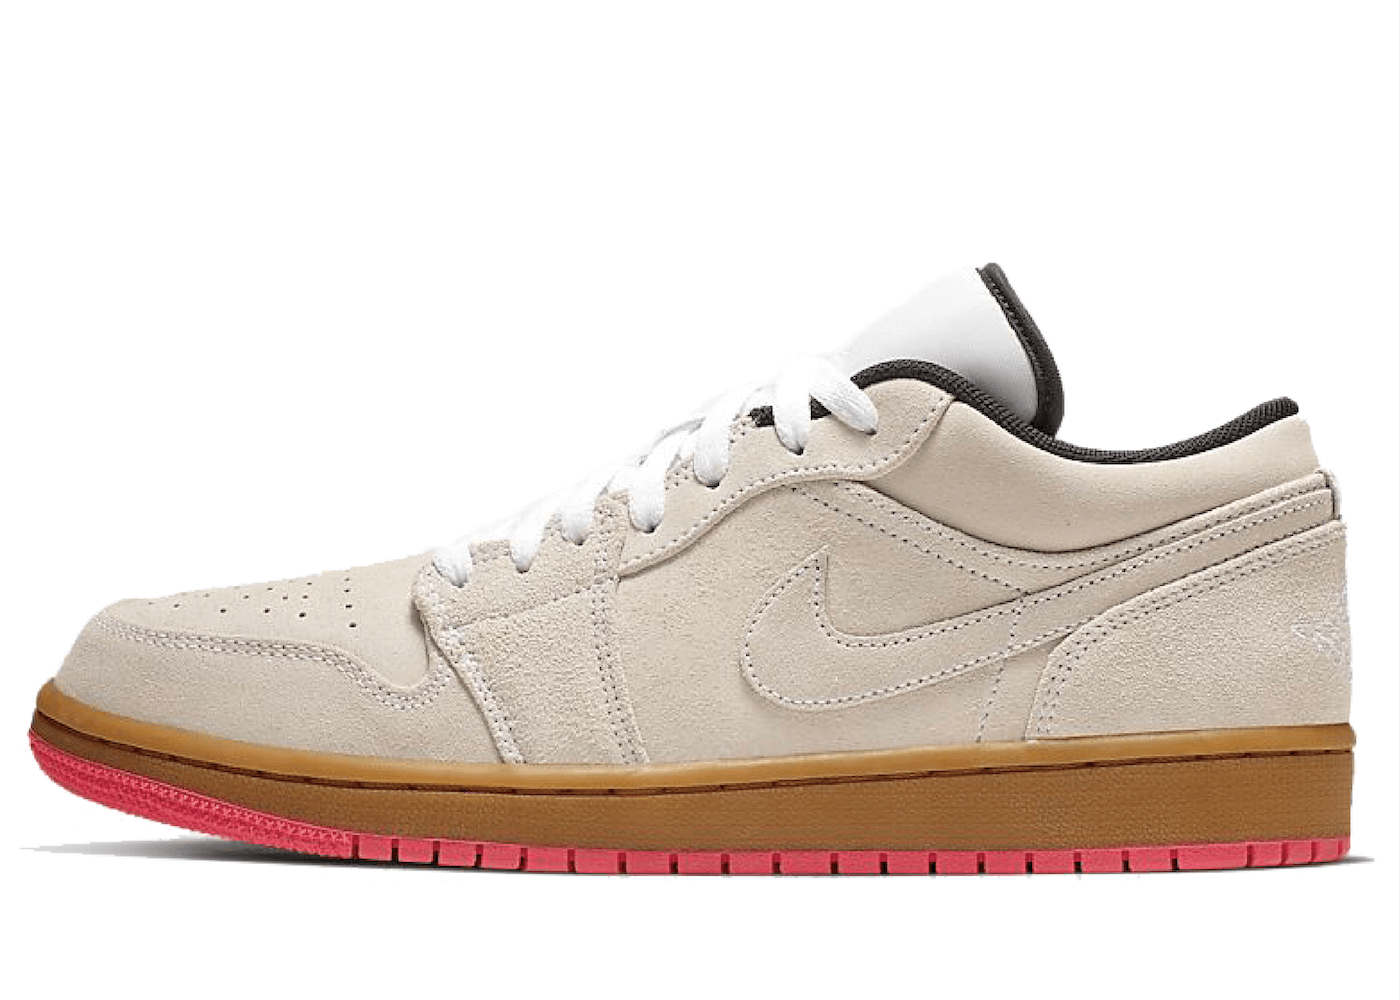 Nike Air Jordan 1 Low White Gum Hyper Pinkの写真